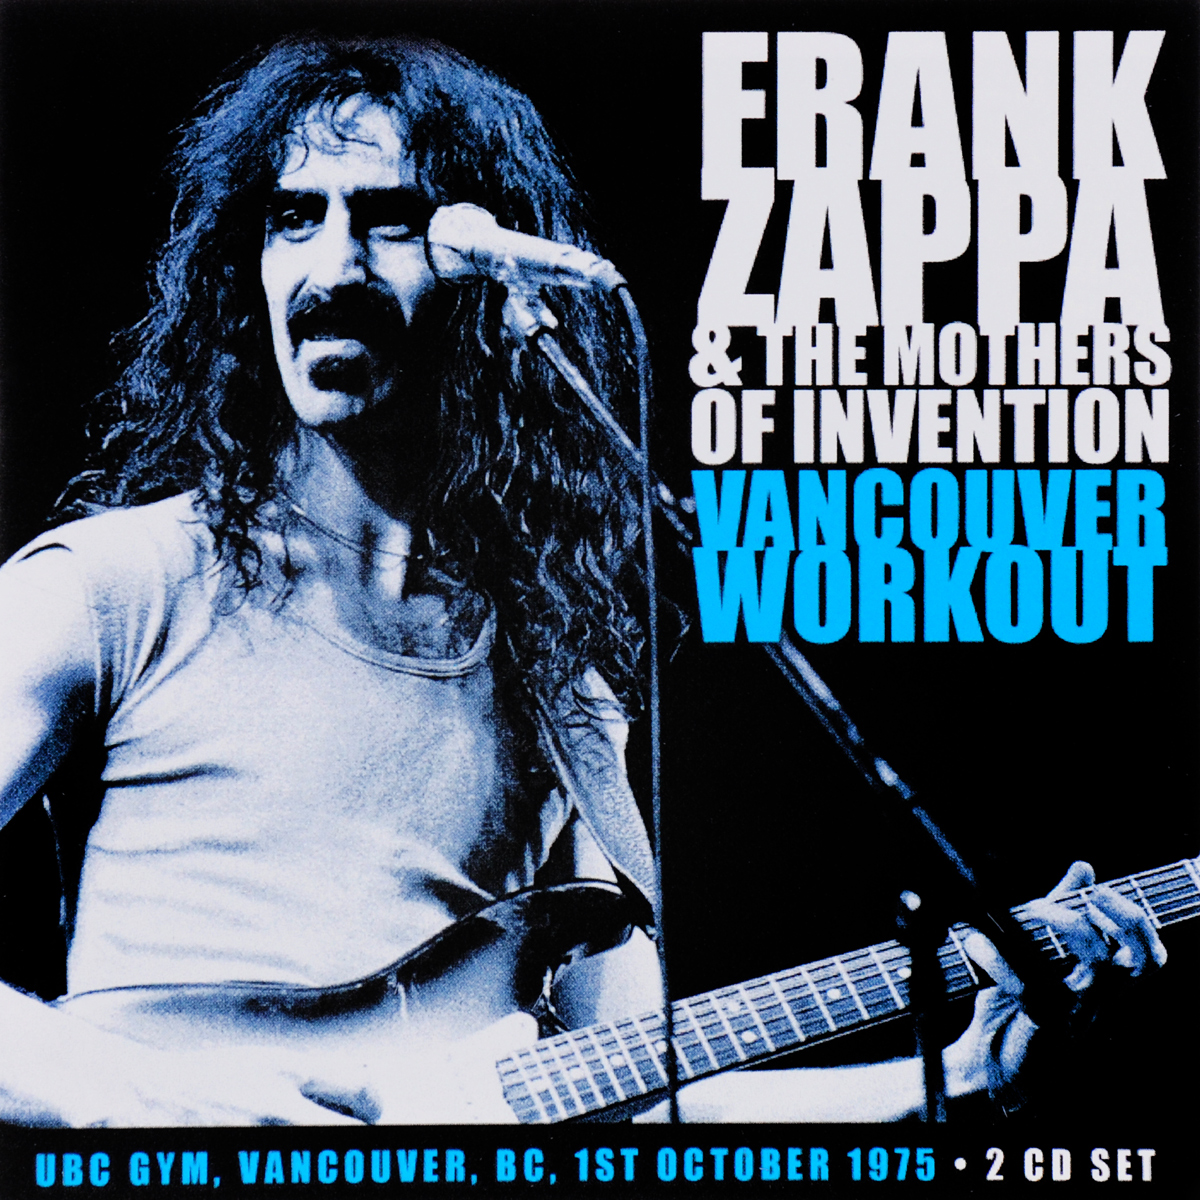 Фрэнк Заппа,The Mothers Of Invention Frank Zappa & The Mothers Of Invention. Vancouver Workout (2 CD) kidd s the invention of wings